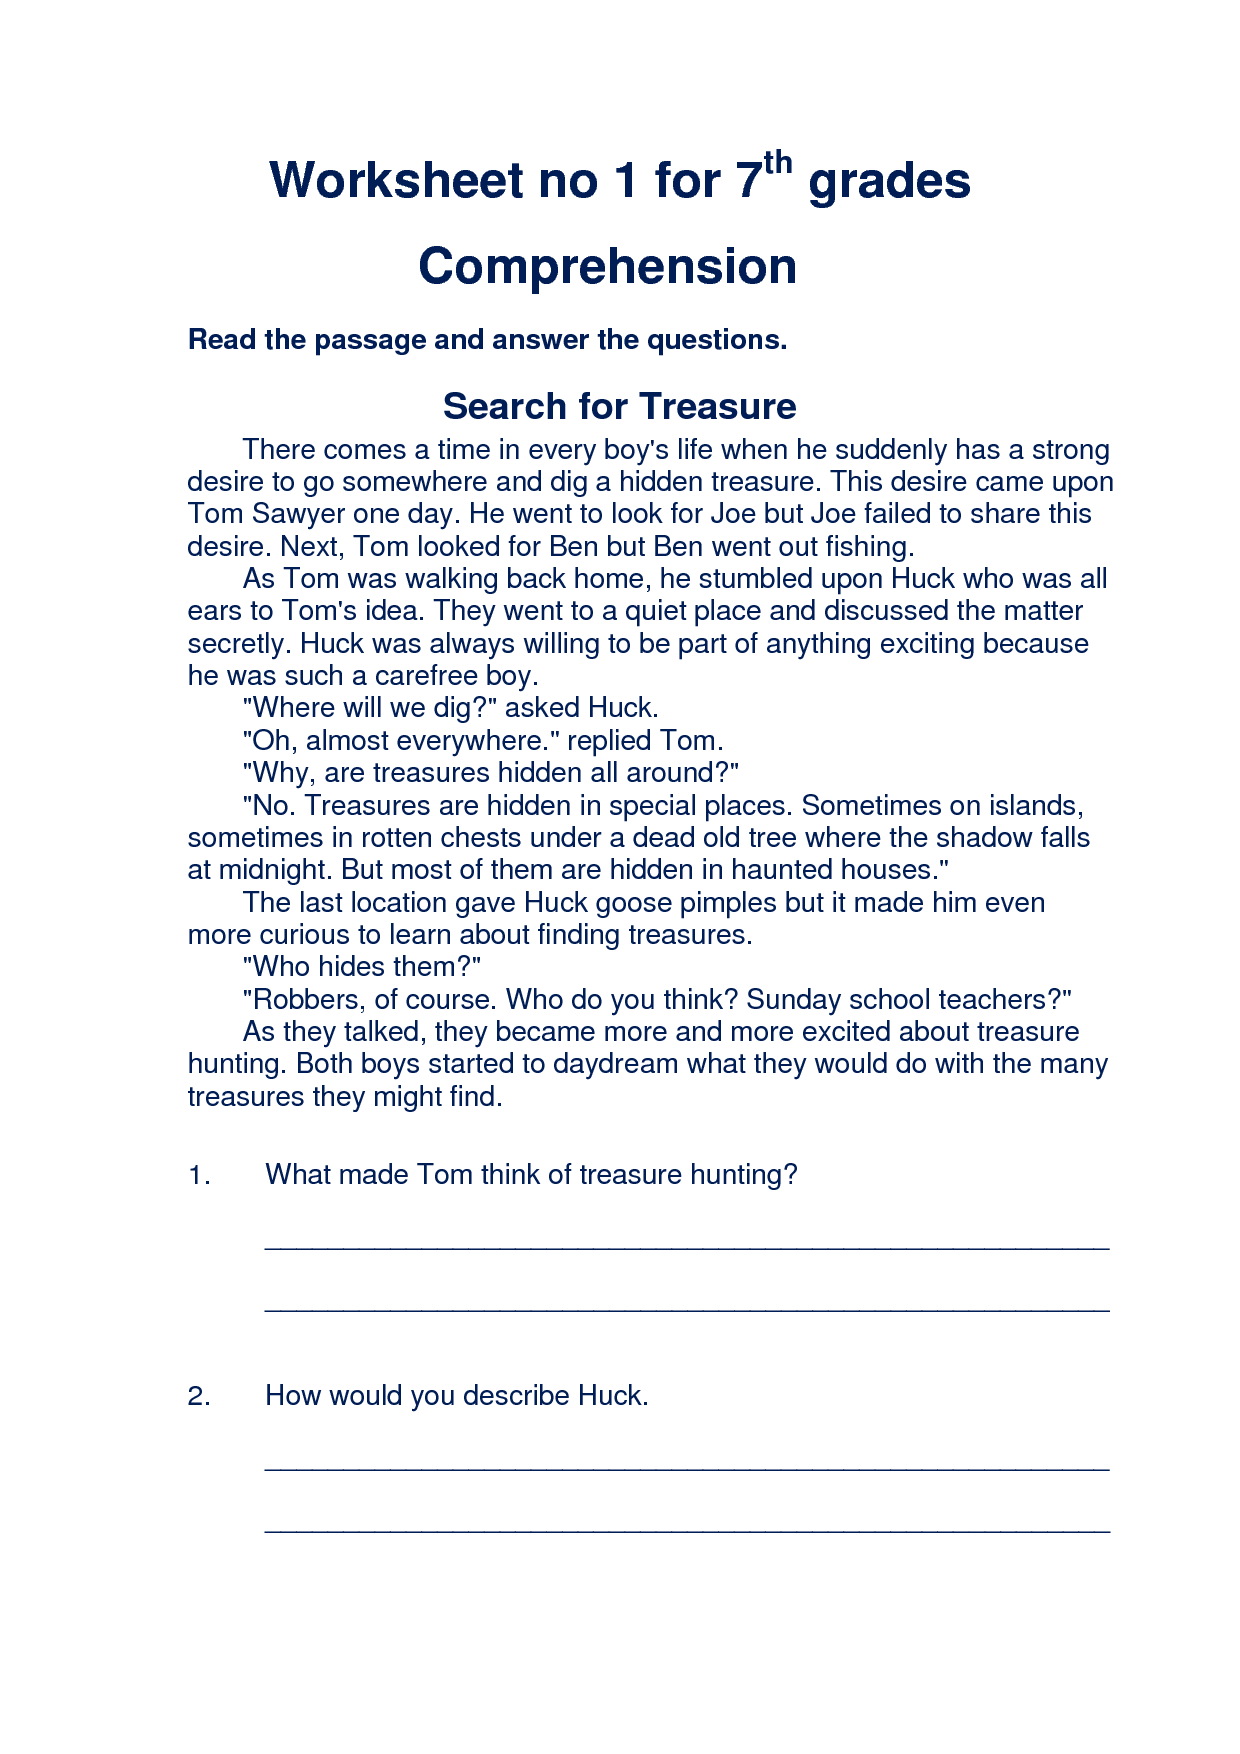 Printables Free Reading Worksheets For 5th Grade worksheet reading practice for 5th grade mikyu free measurement worksheets scales standard 5b